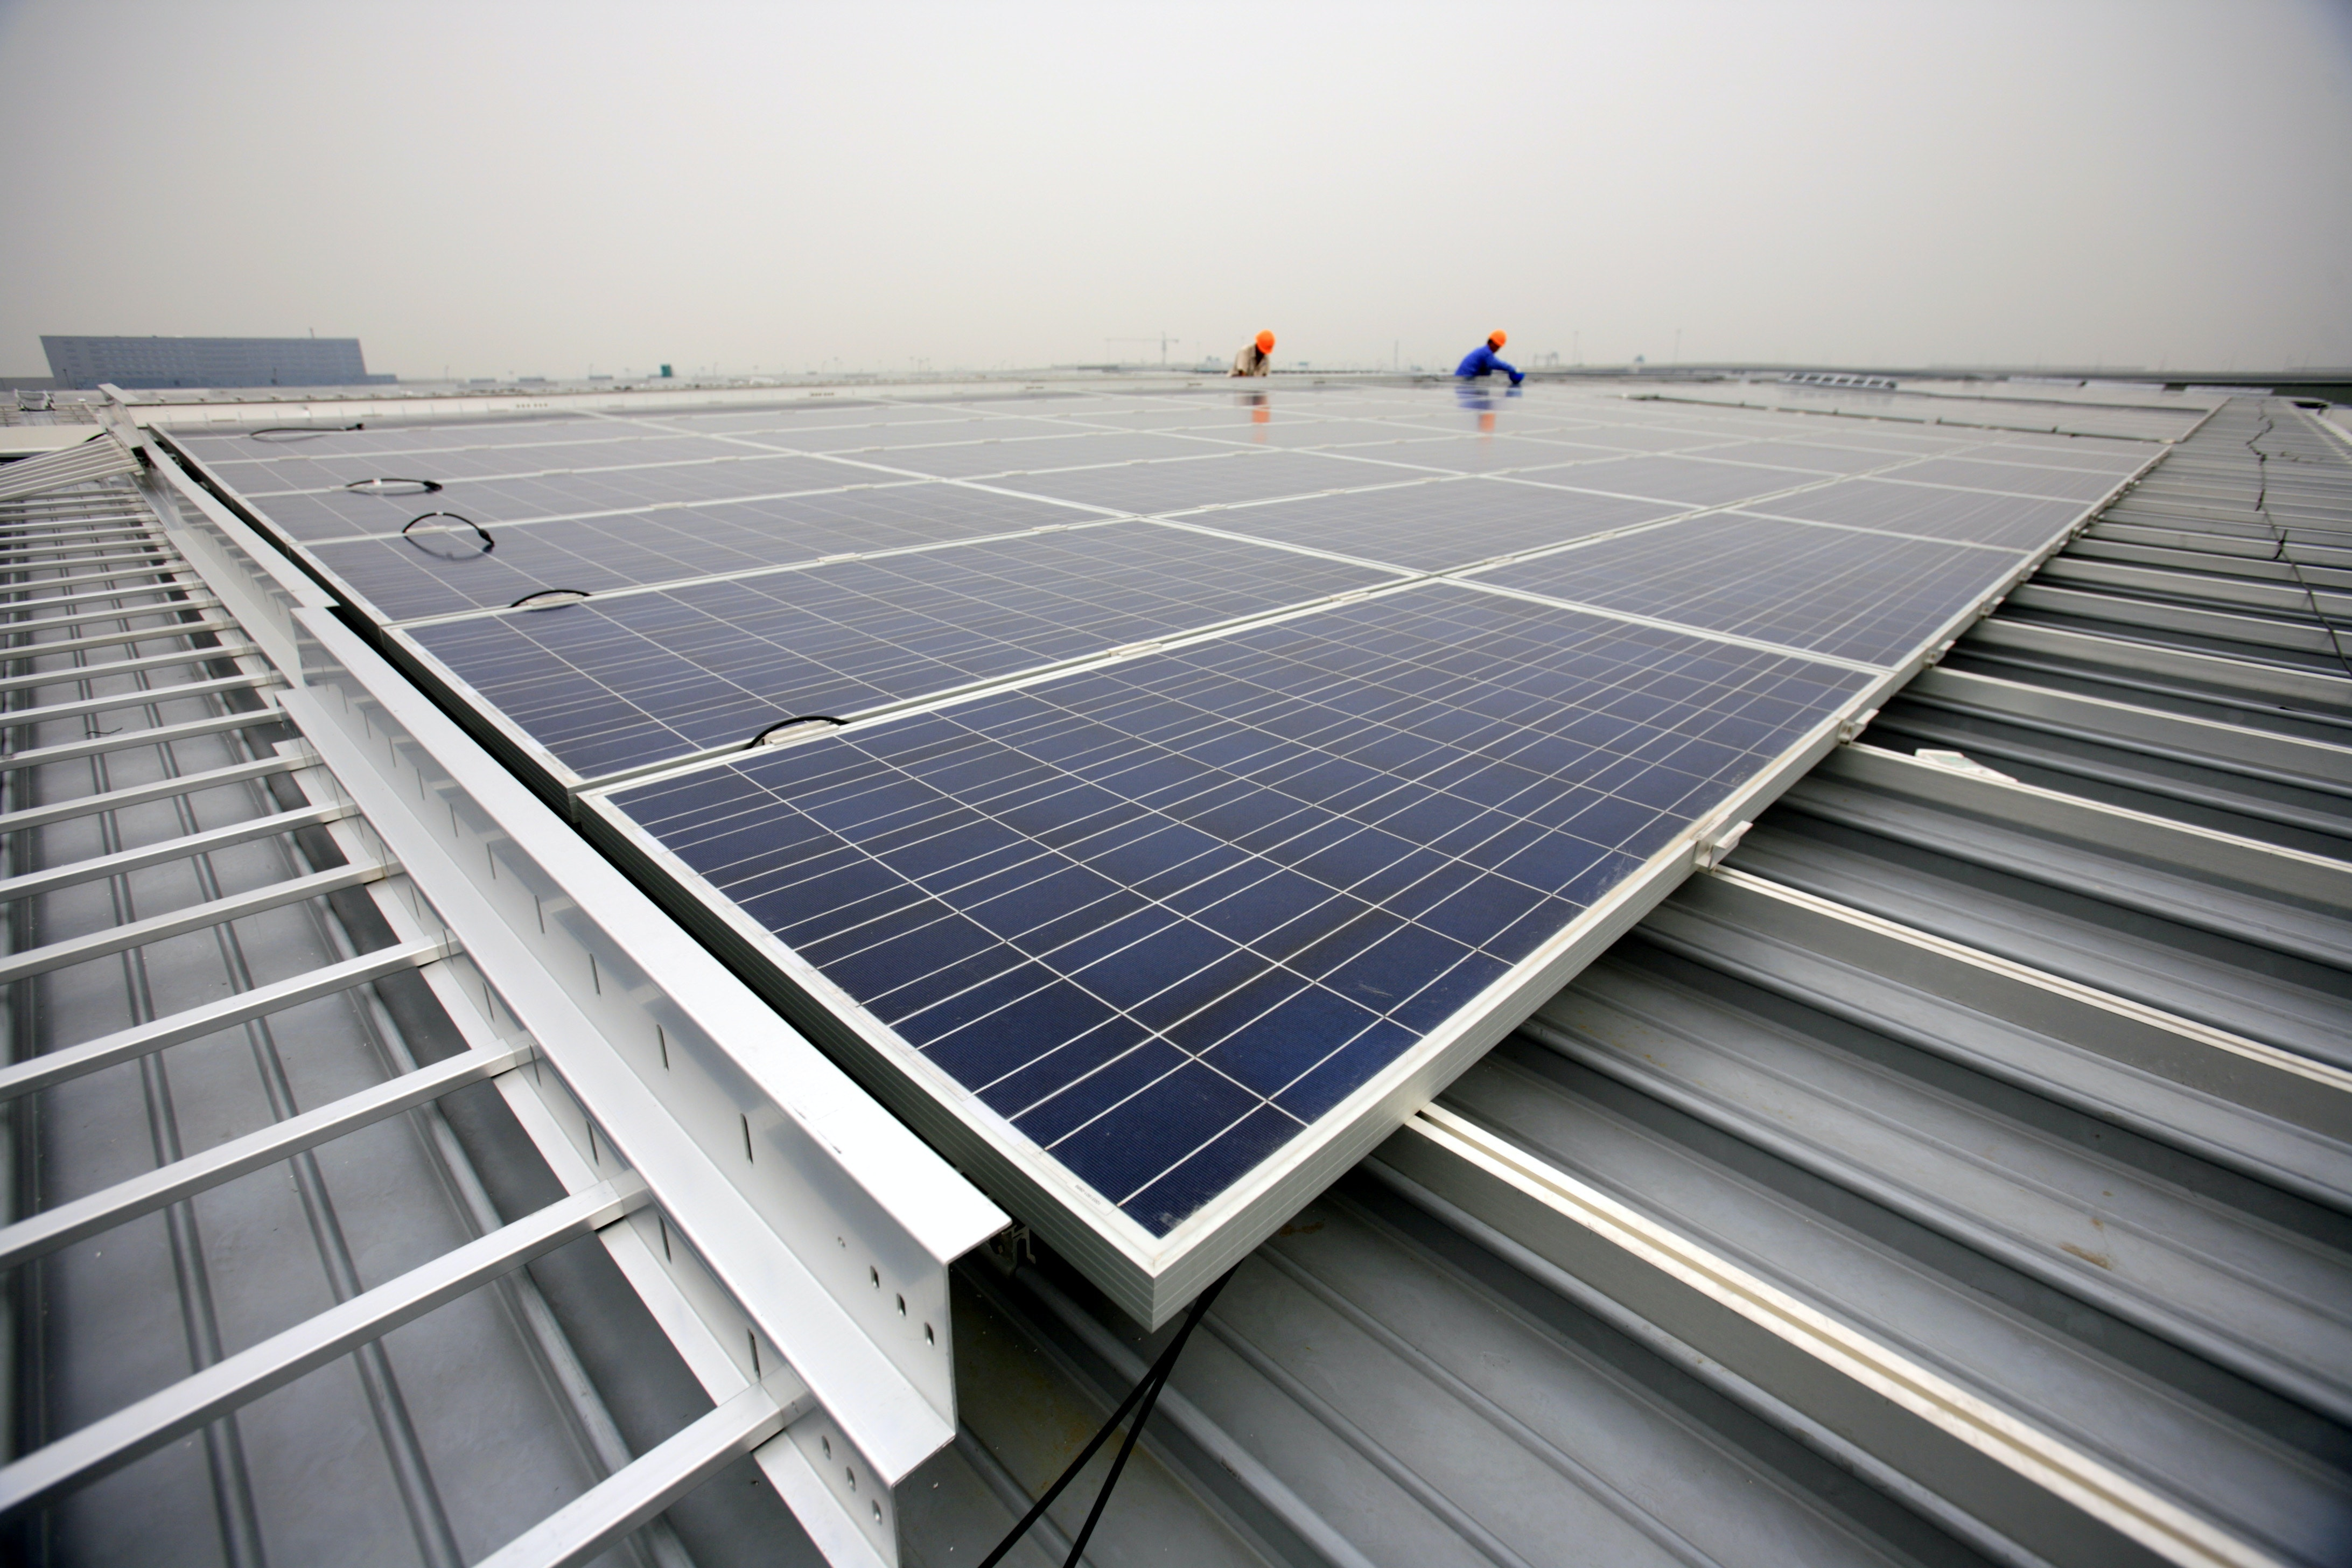 the future of america u0026 39 s solar industry rests on blue